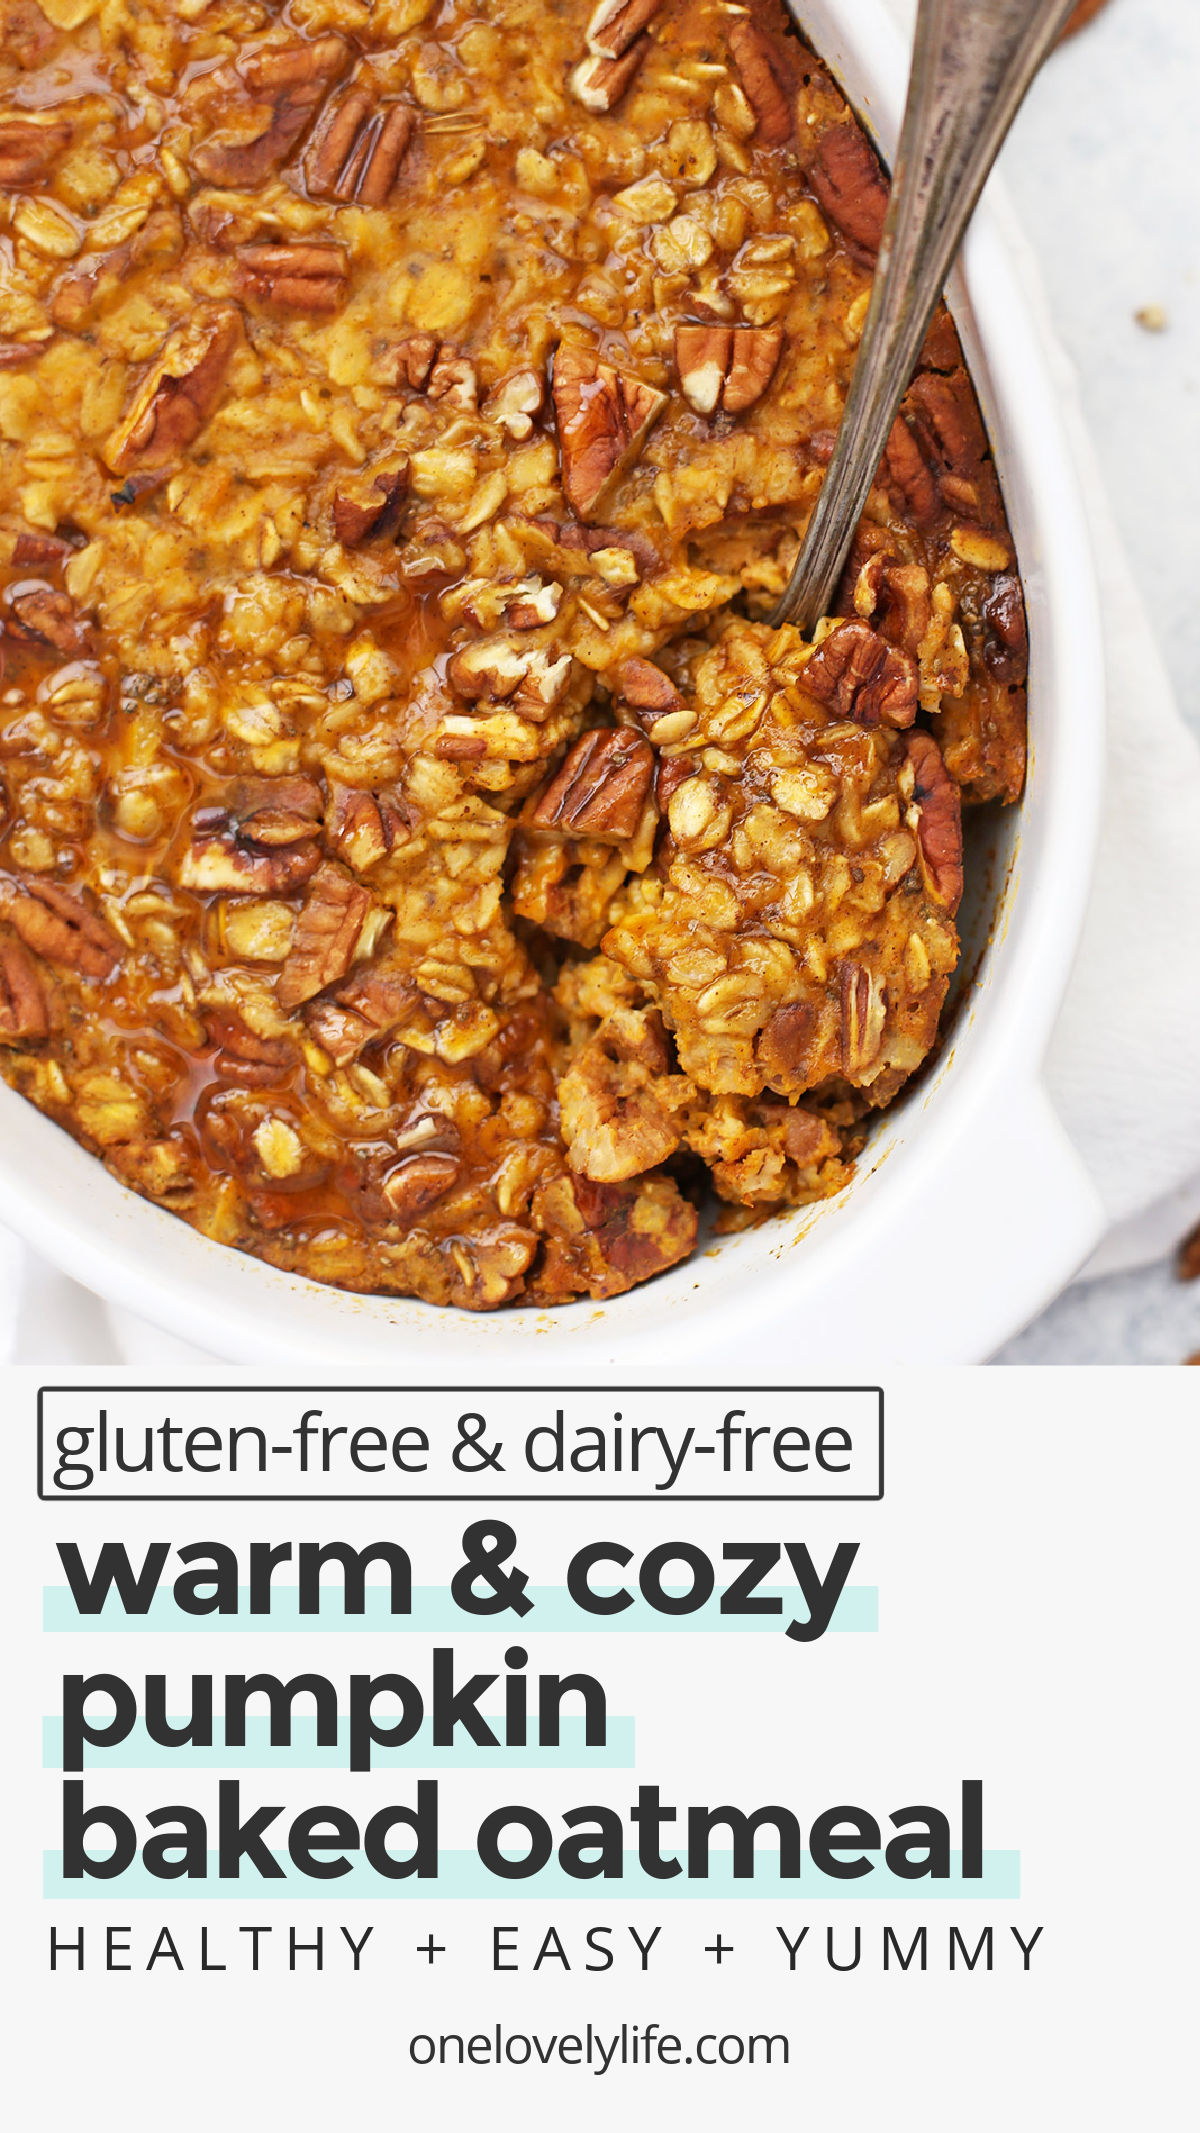 Baked Pumpkin Oatmeal - Studded with pecans and laced with the perfect blend of warm spices, this cozy pumpkin baked oatmeal recipe hits all the right notes! (Gluten free, vegan-friendly) // Pumpkin Oatmeal Recipe // Fall Breakfast // Healthy Pumpkin Recipes // Gluten-Free Breakfast // Healthy Breakfast // Vegan Breakfast // Pumpkin Breakfast Recipes #glutenfree #pumpkin #bakedoatmeal #pumpkinoatmeal #bakedoats #mealprep #fall #vegan #vegetarian